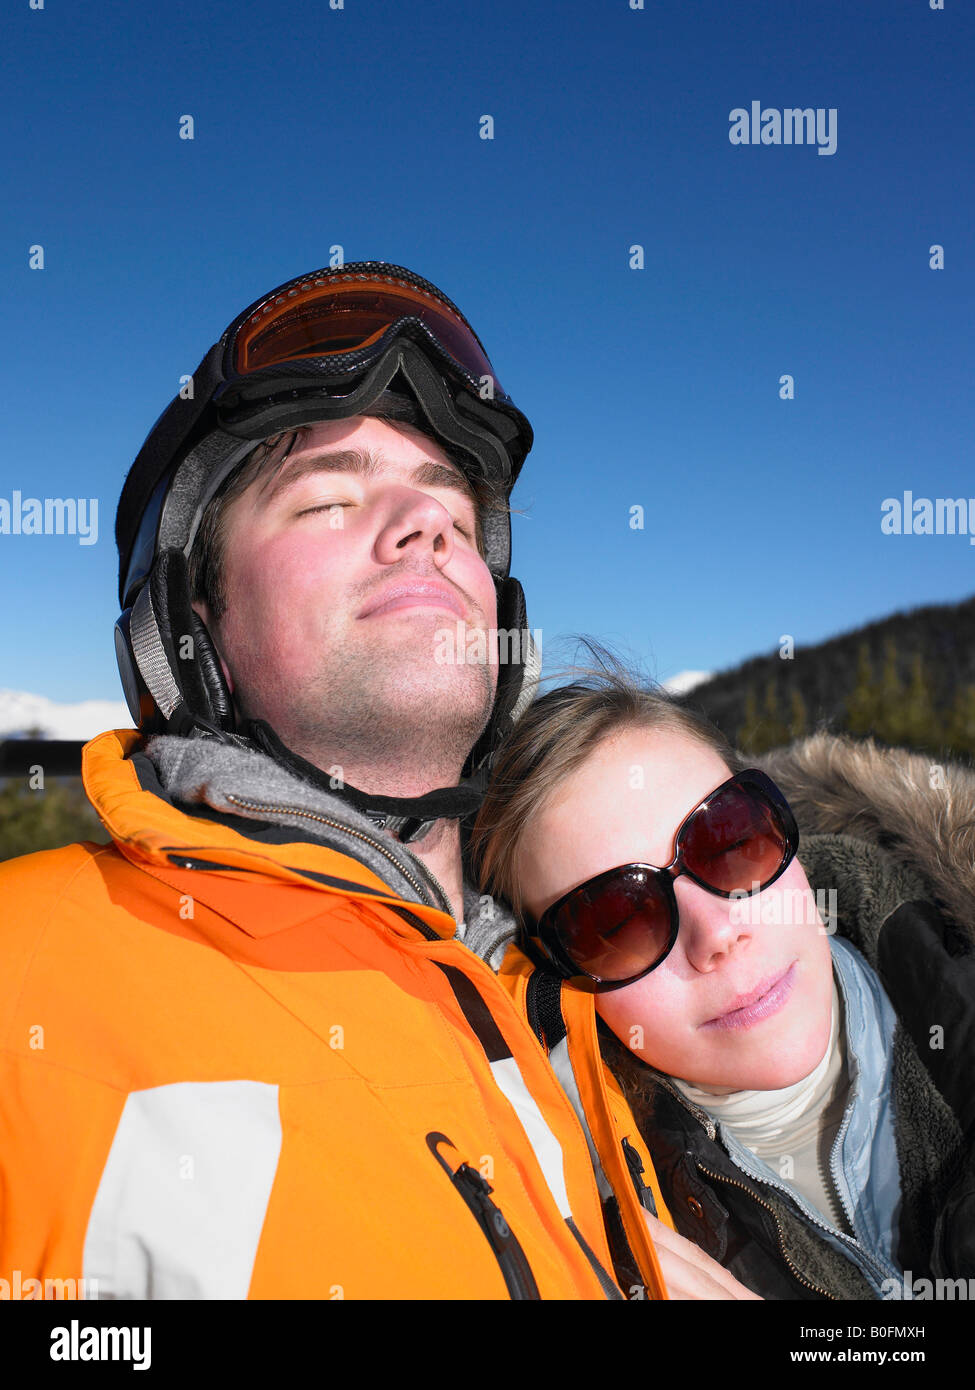 Couple on ski lift - Stock Image